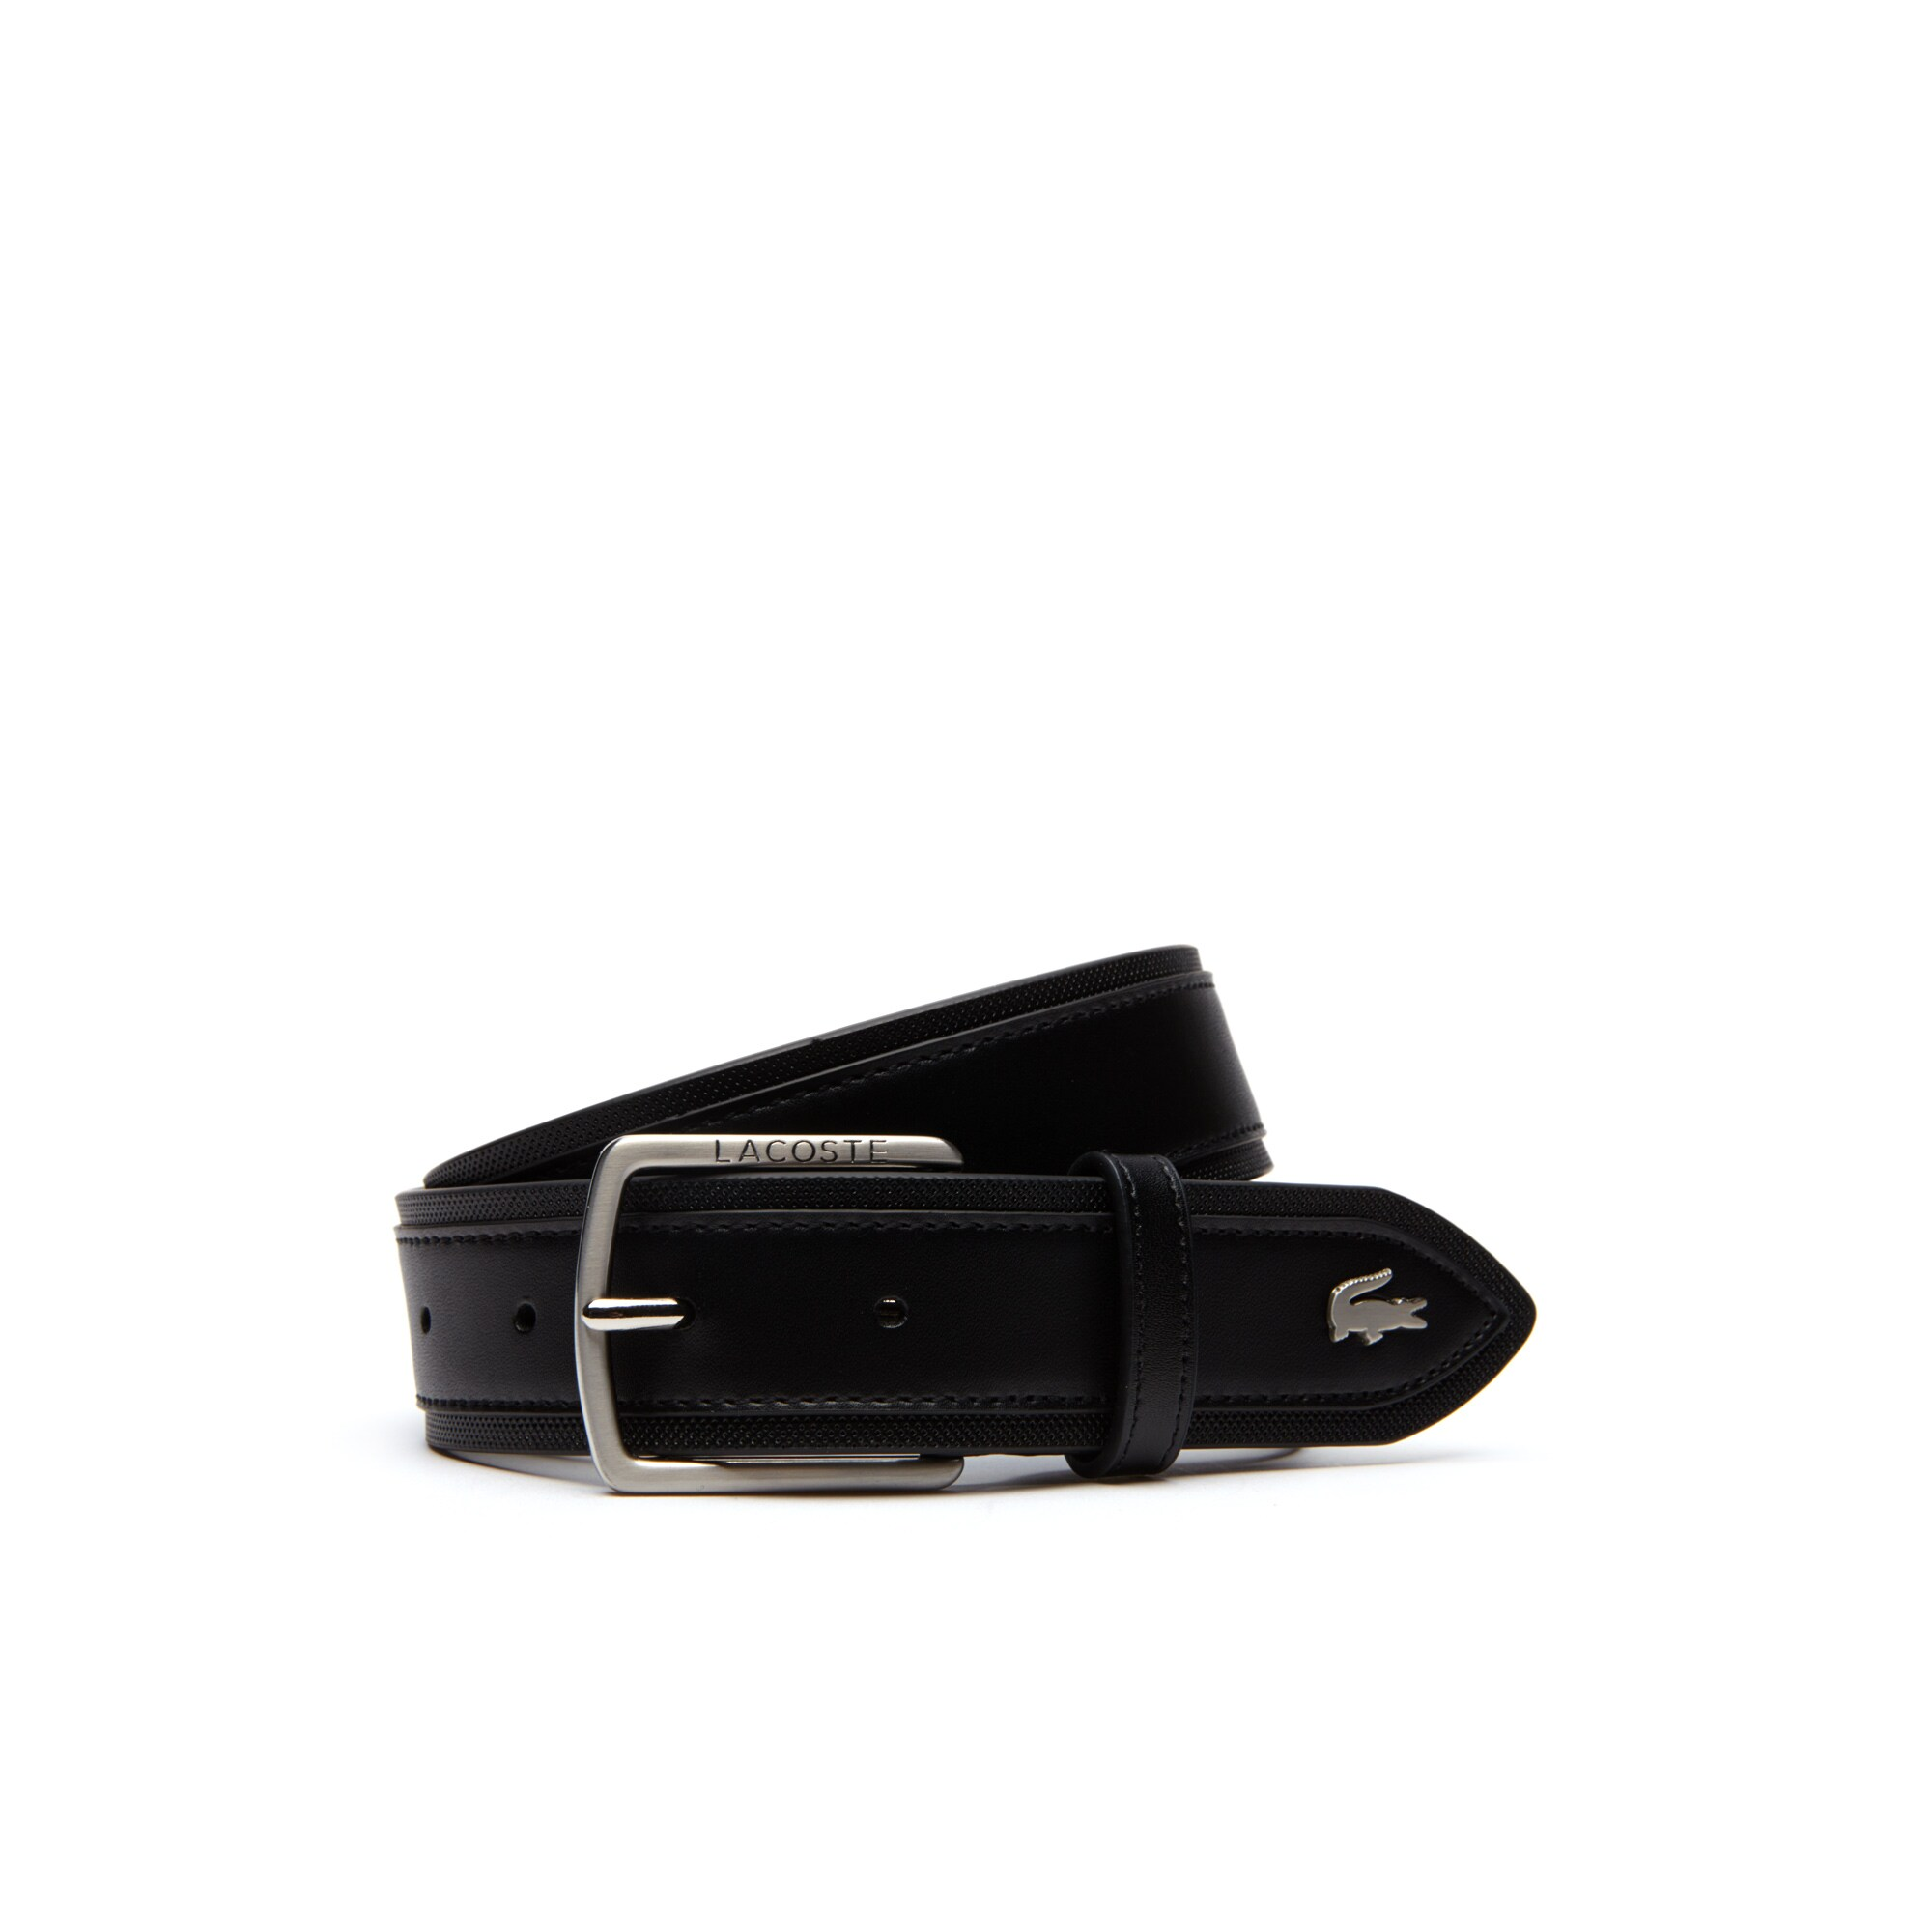 Men's Tongue Buckle Piqué Band Smooth and Piqué Leather Belt